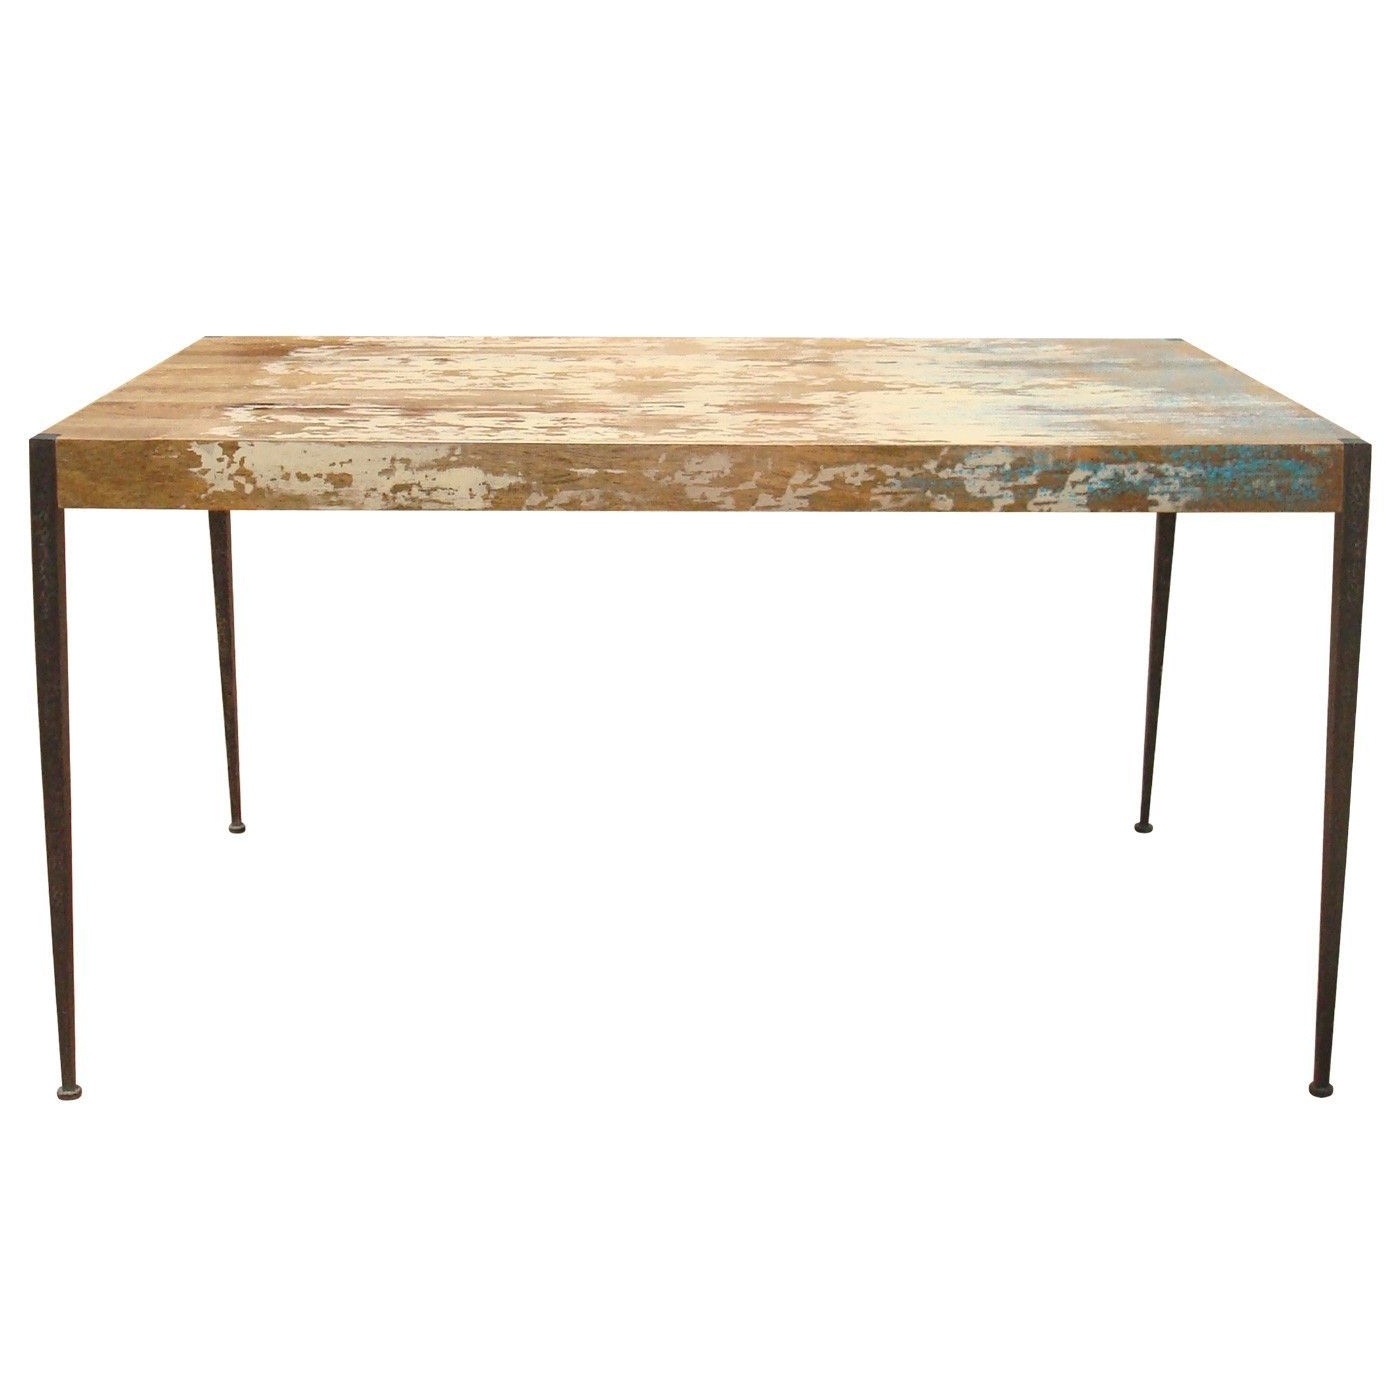 Well Liked Mango Wood/iron Dining Tables Pertaining To Astoria Dining Table Solid Mango Wood Iron Leg (View 25 of 25)